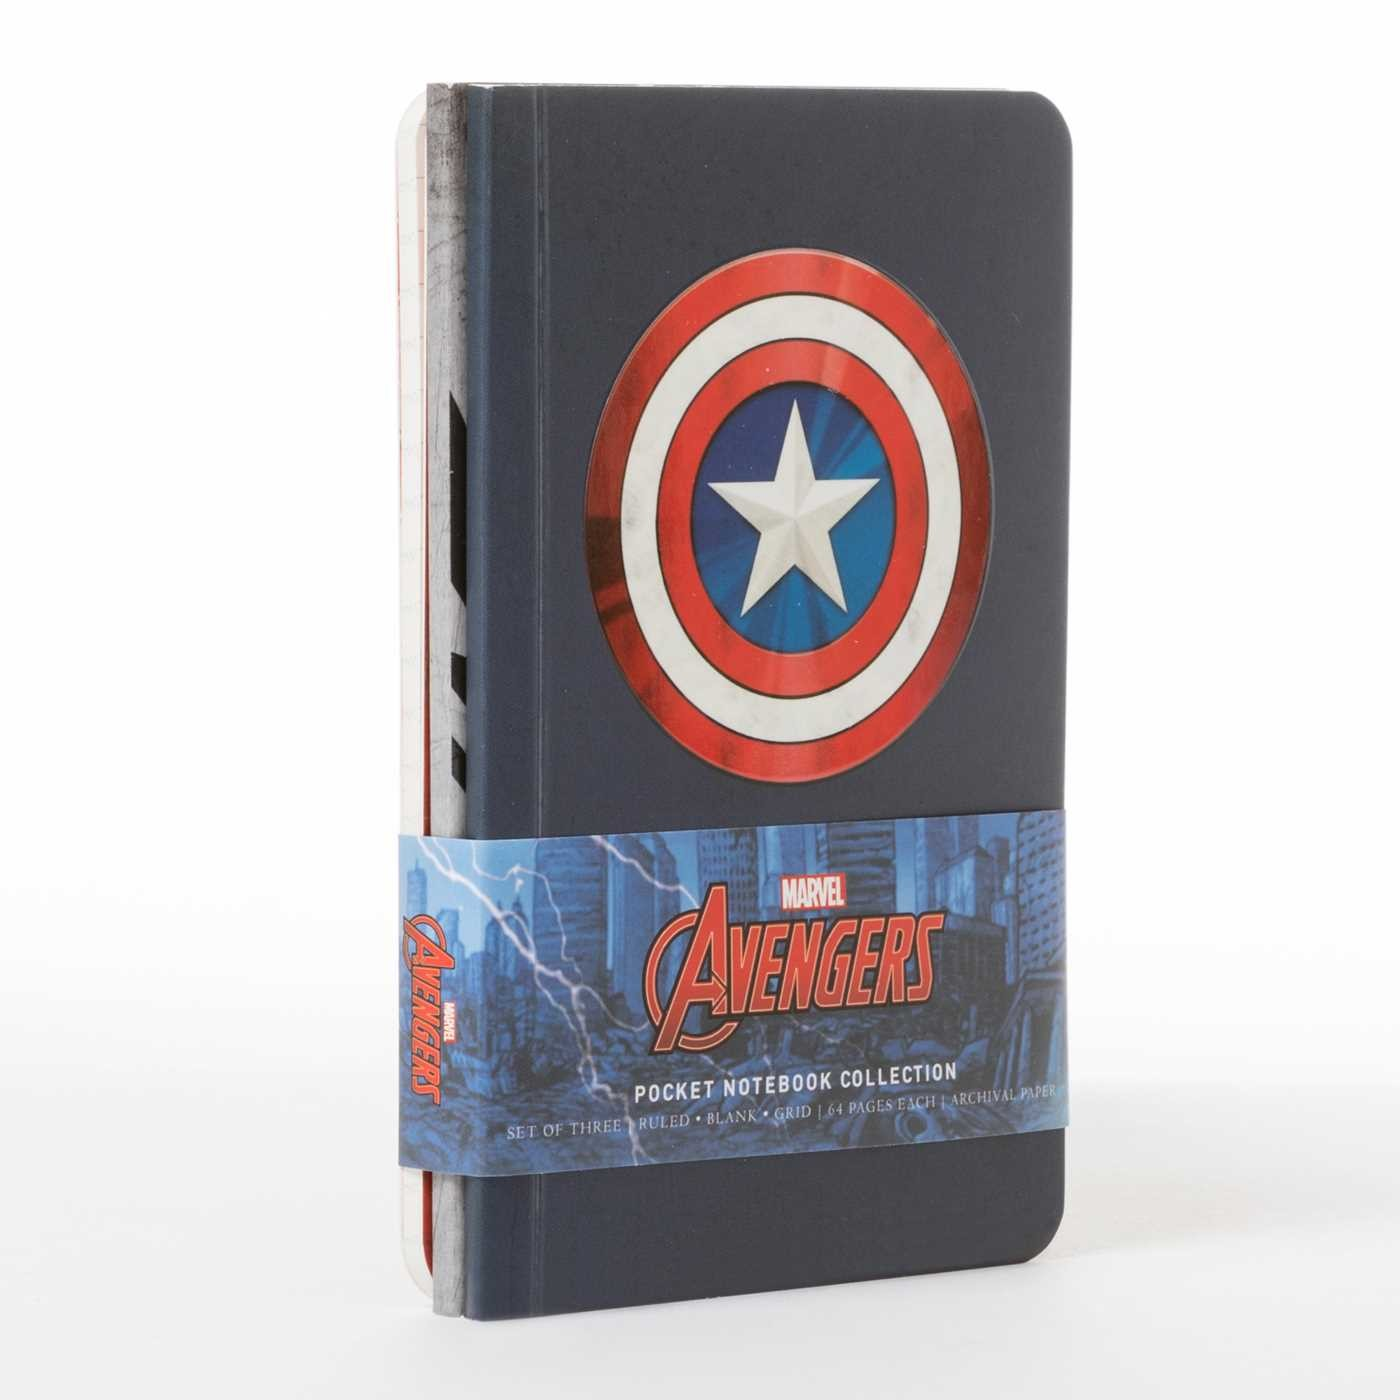 Marvels avengers pocket notebook collection set of 3 9781683832843.in04